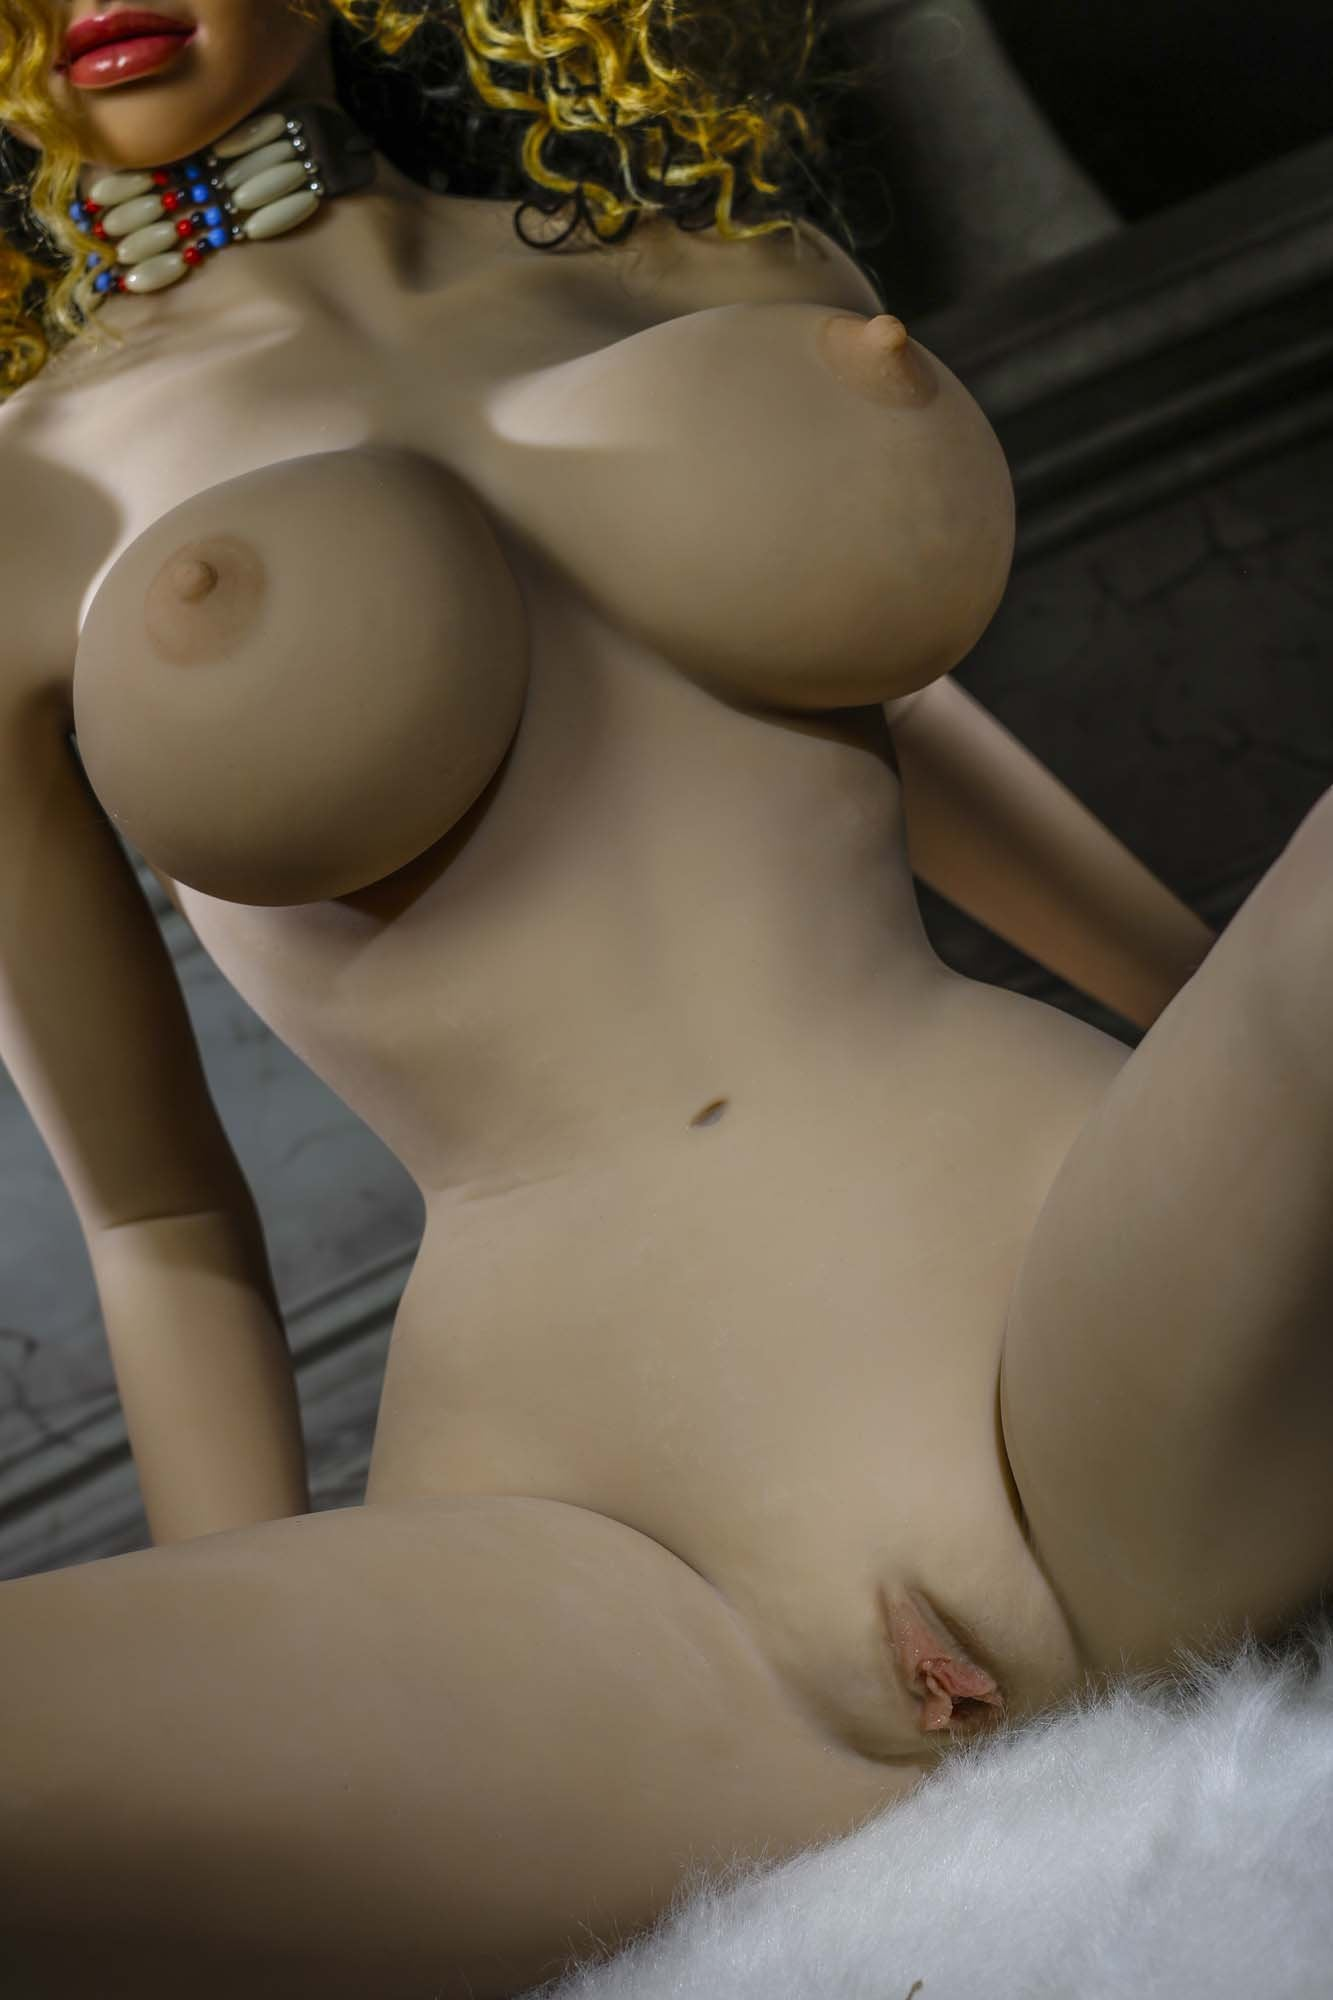 oona 158cm brown hair jy big boobs athletic tan skin tpe sex doll(10)